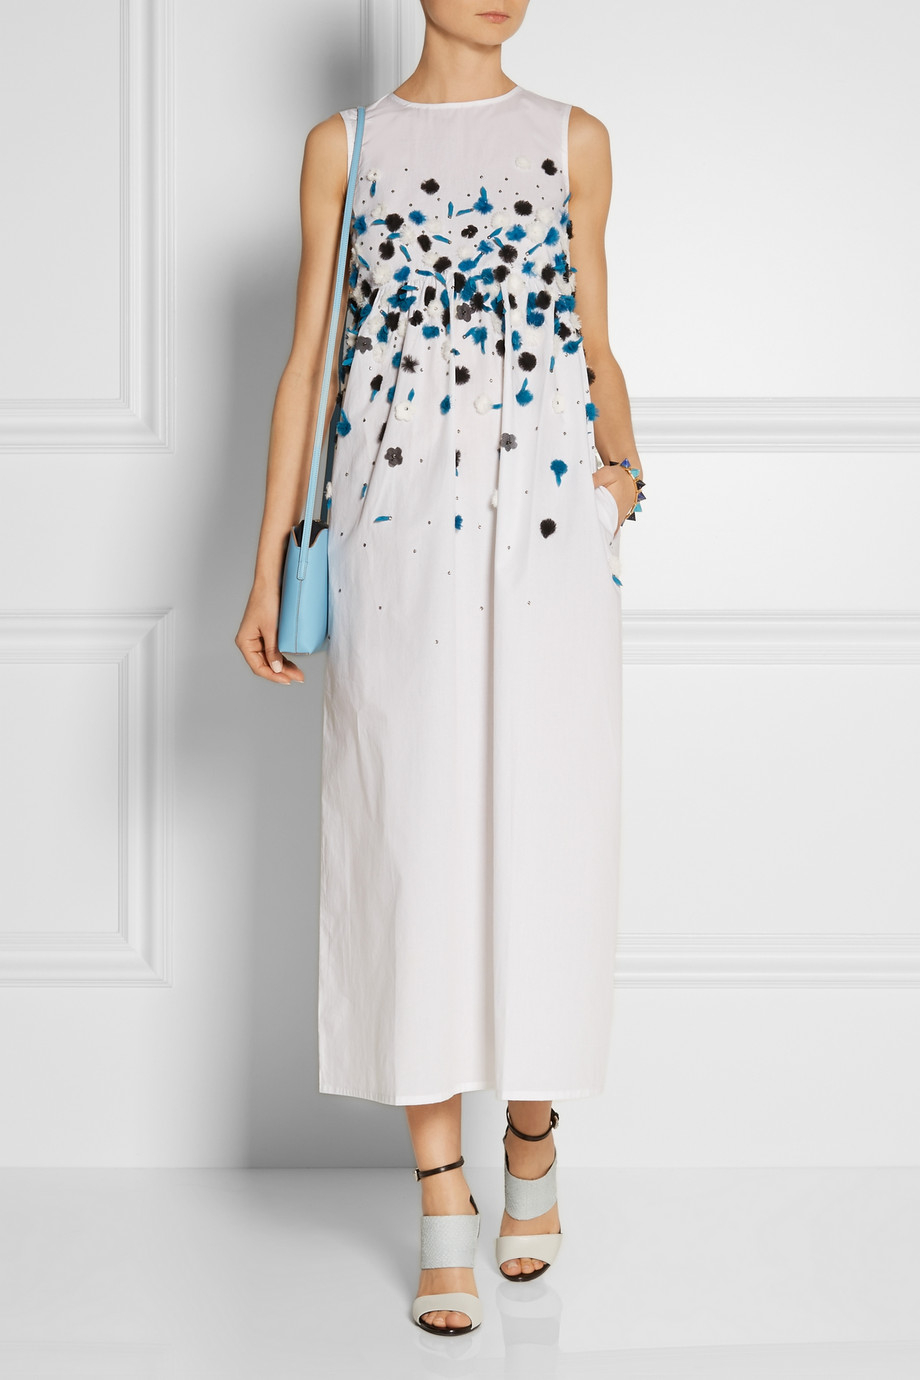 Suno Embellished Cotton Maxi Dress in White | Lyst